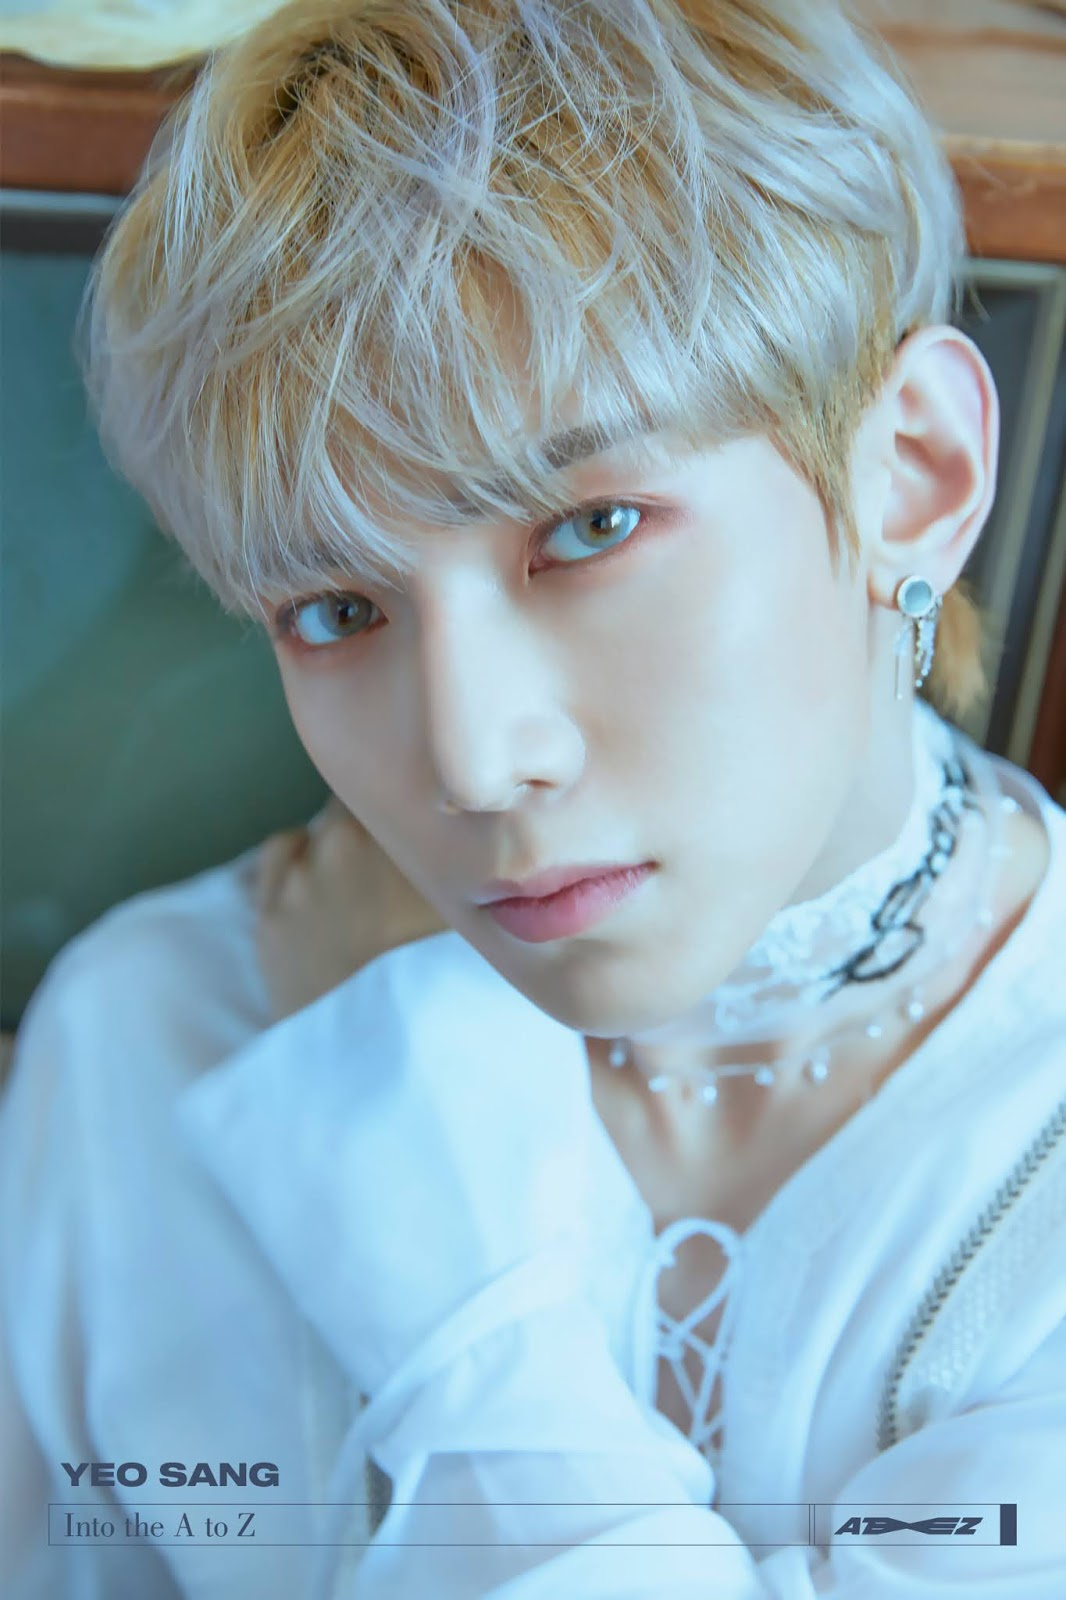 ateez into the a to z yeosang